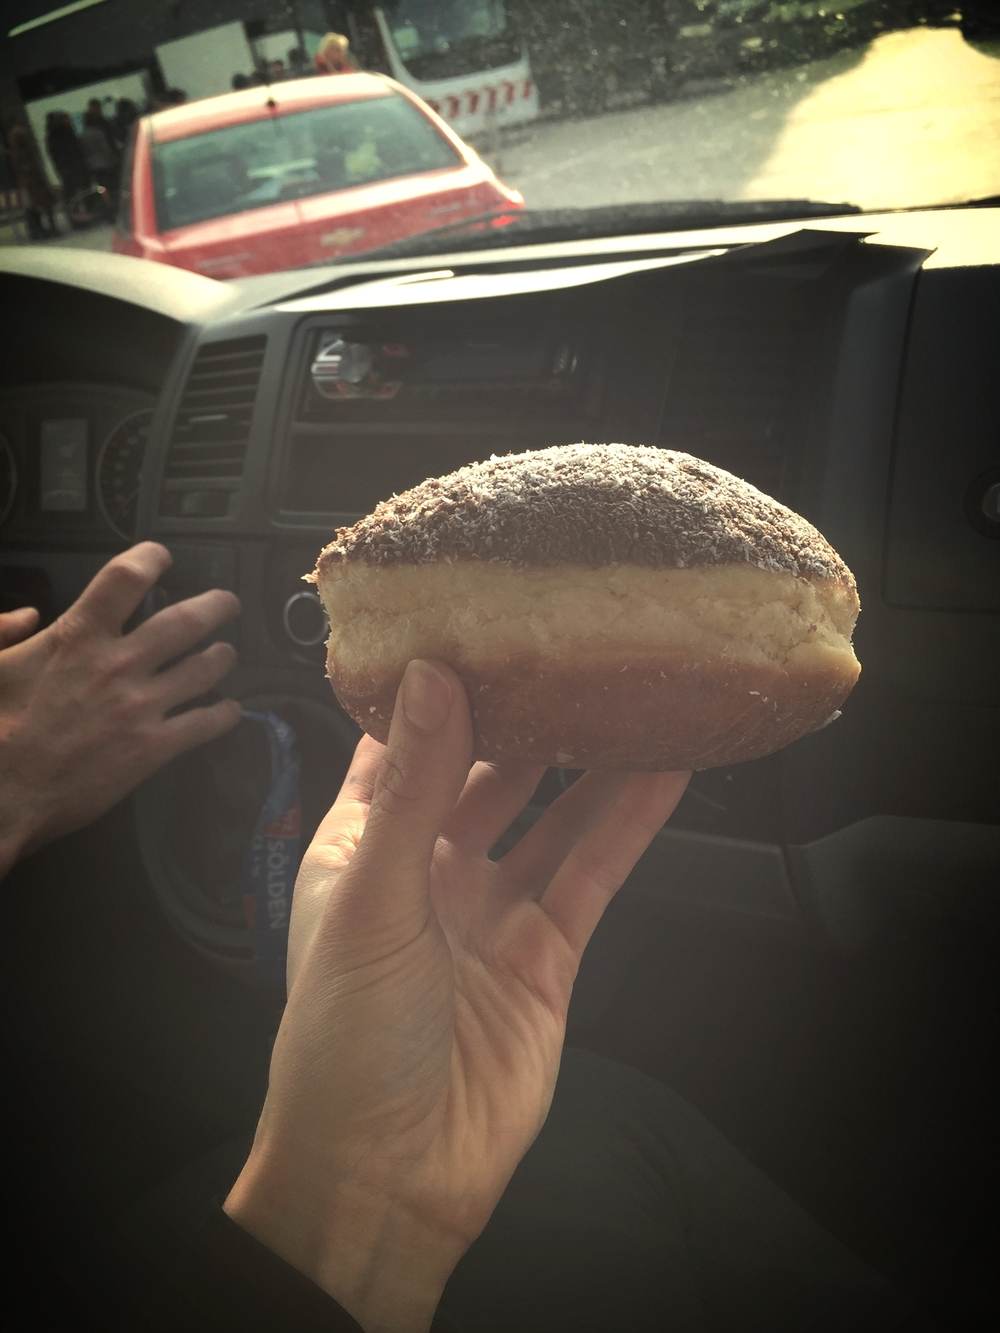 The best doughnut in the world - baked fresh and the size of my head. Thanks to the SLO team for showing me!